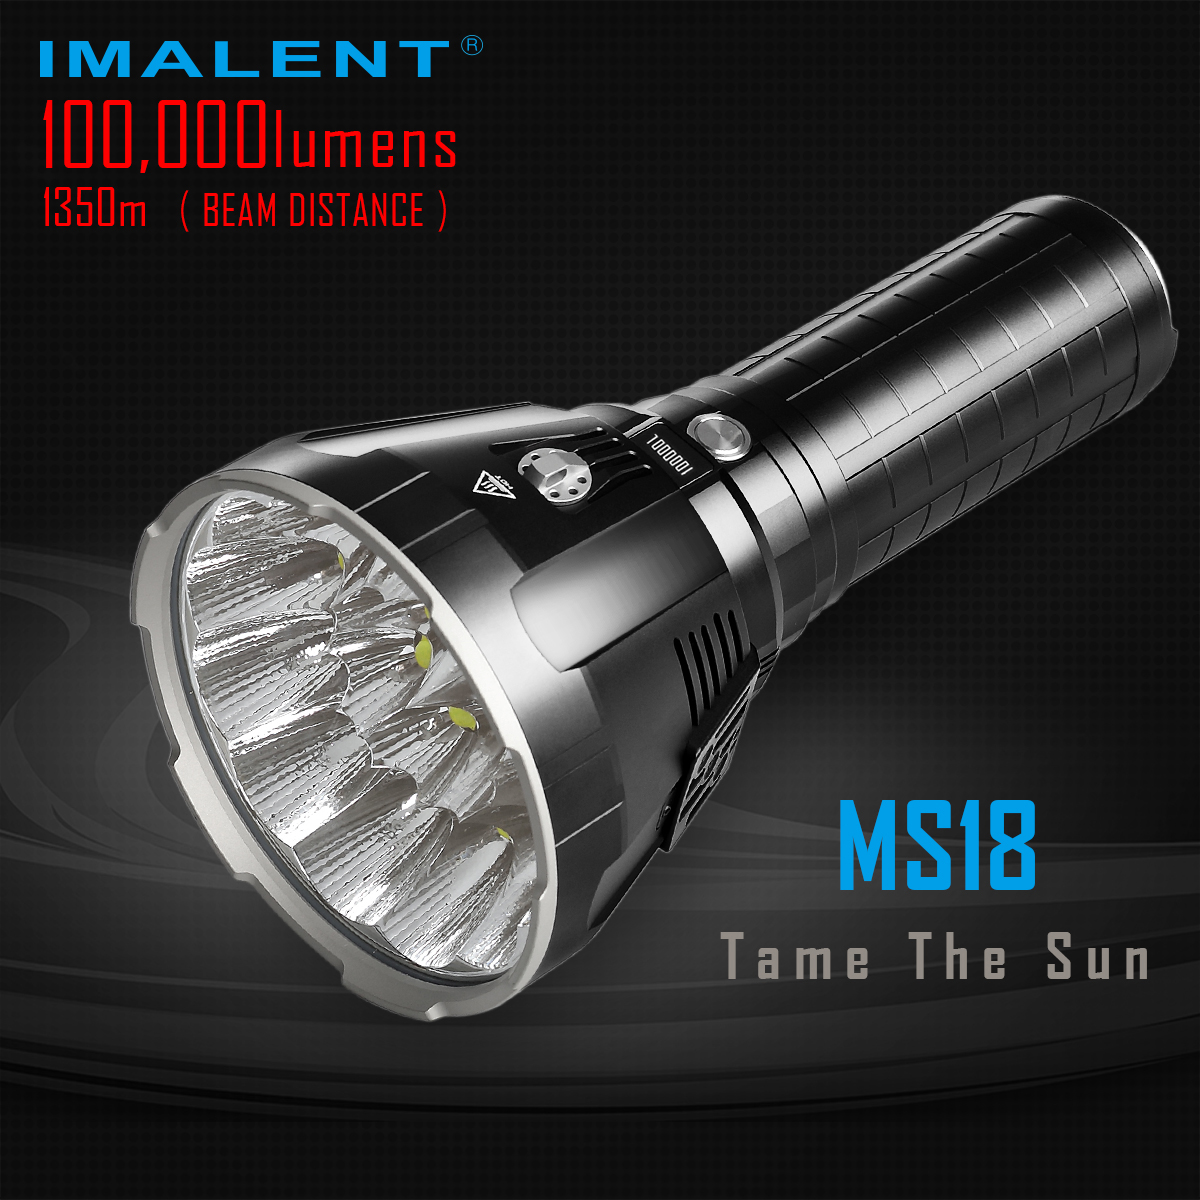 IMALENT MS18 Brightest Flashlight 100000 Lumens Rechargeable Cree XHP70.2 Led Searchlight Camping Hunting Lantern Outdoor Torch